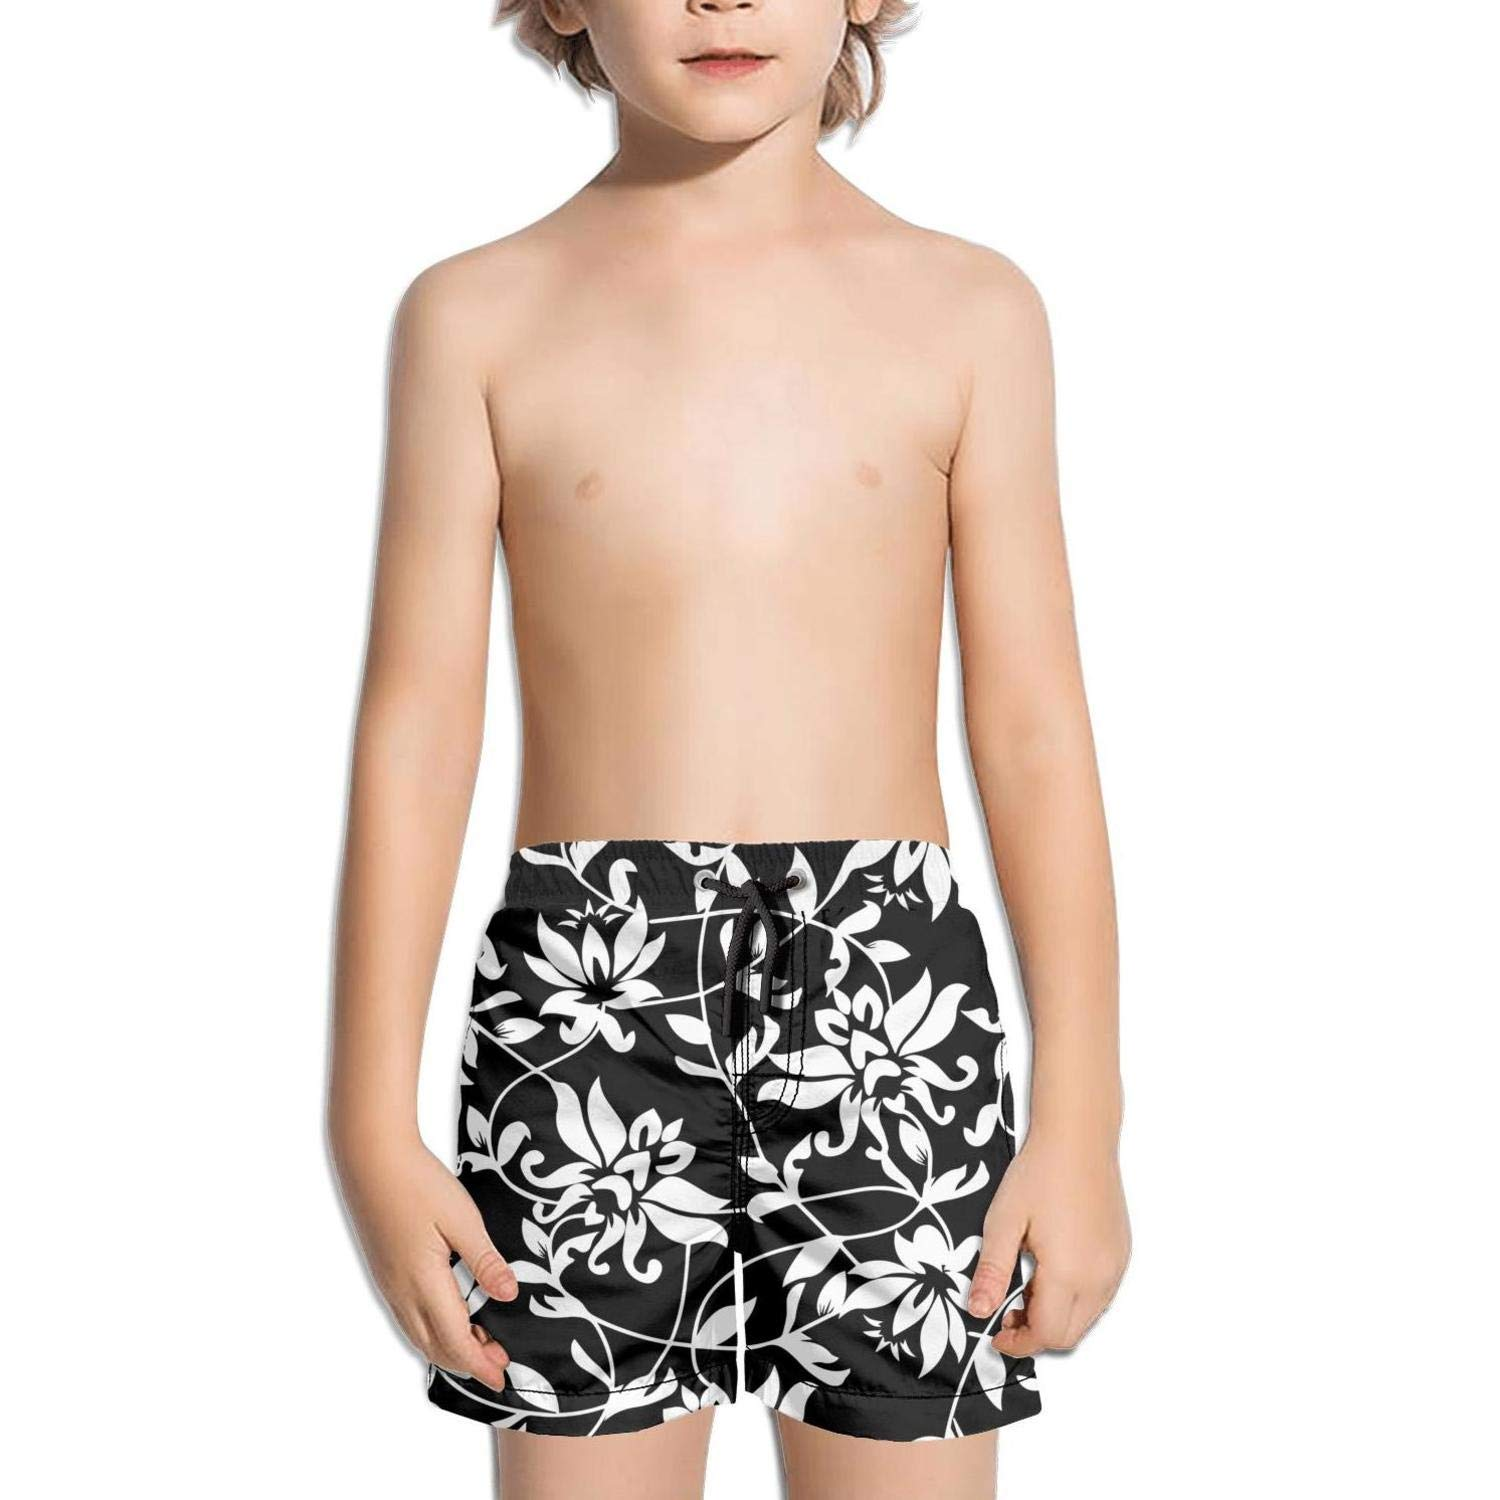 Lenard Hughes Boys Quick Dry Beach Shorts with Pockets Black Beautiful Lotus Flowers Swim Trunks for Summer